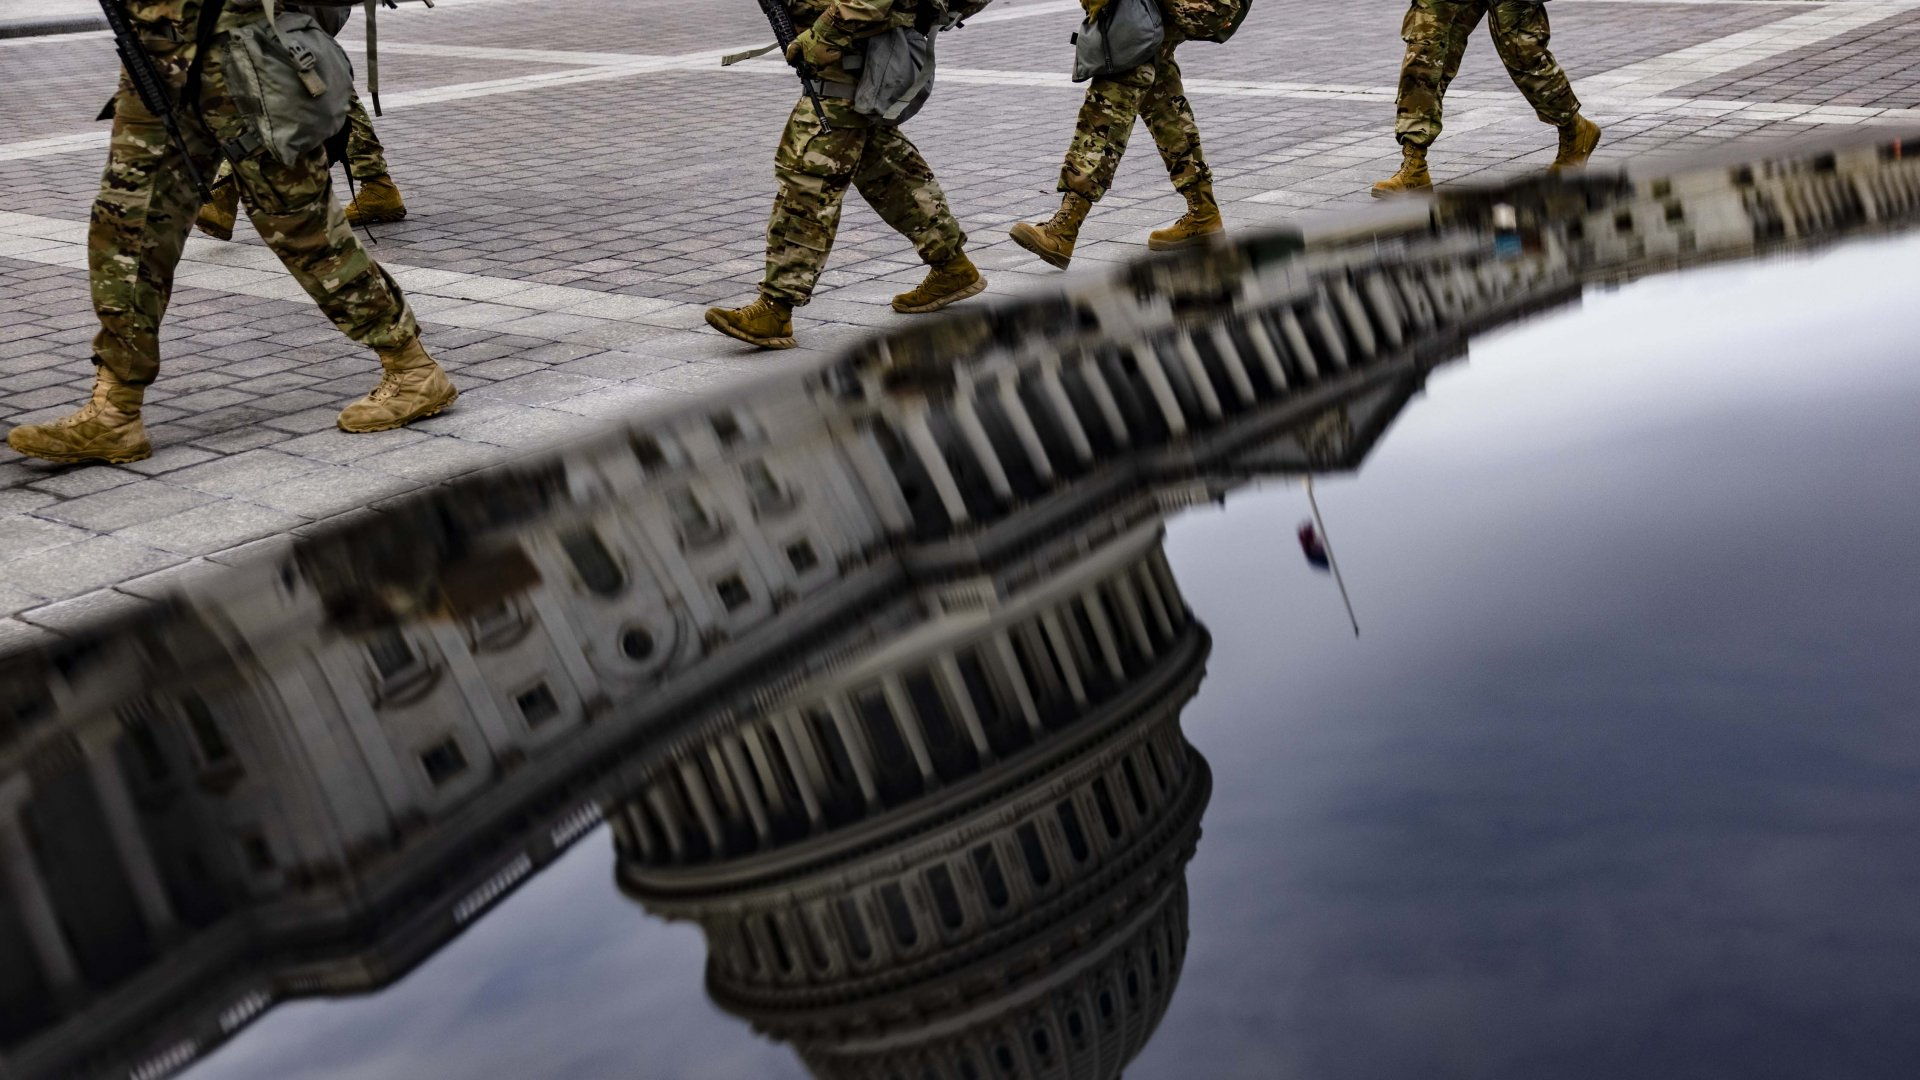 Virginia National Guard soldiers march at the U.S. Capitol on their way to their guard posts on January 16, 2021, in Washington, D.C. After last week's riots at the U.S. Capitol Building, the FBI has warned of additional threats in the nation's capital and in all 50 states. According to reports, as many as 25,000 National Guard soldiers will be guarding the city as preparations are made for the inauguration of Joe Biden as the 46th U.S. president.